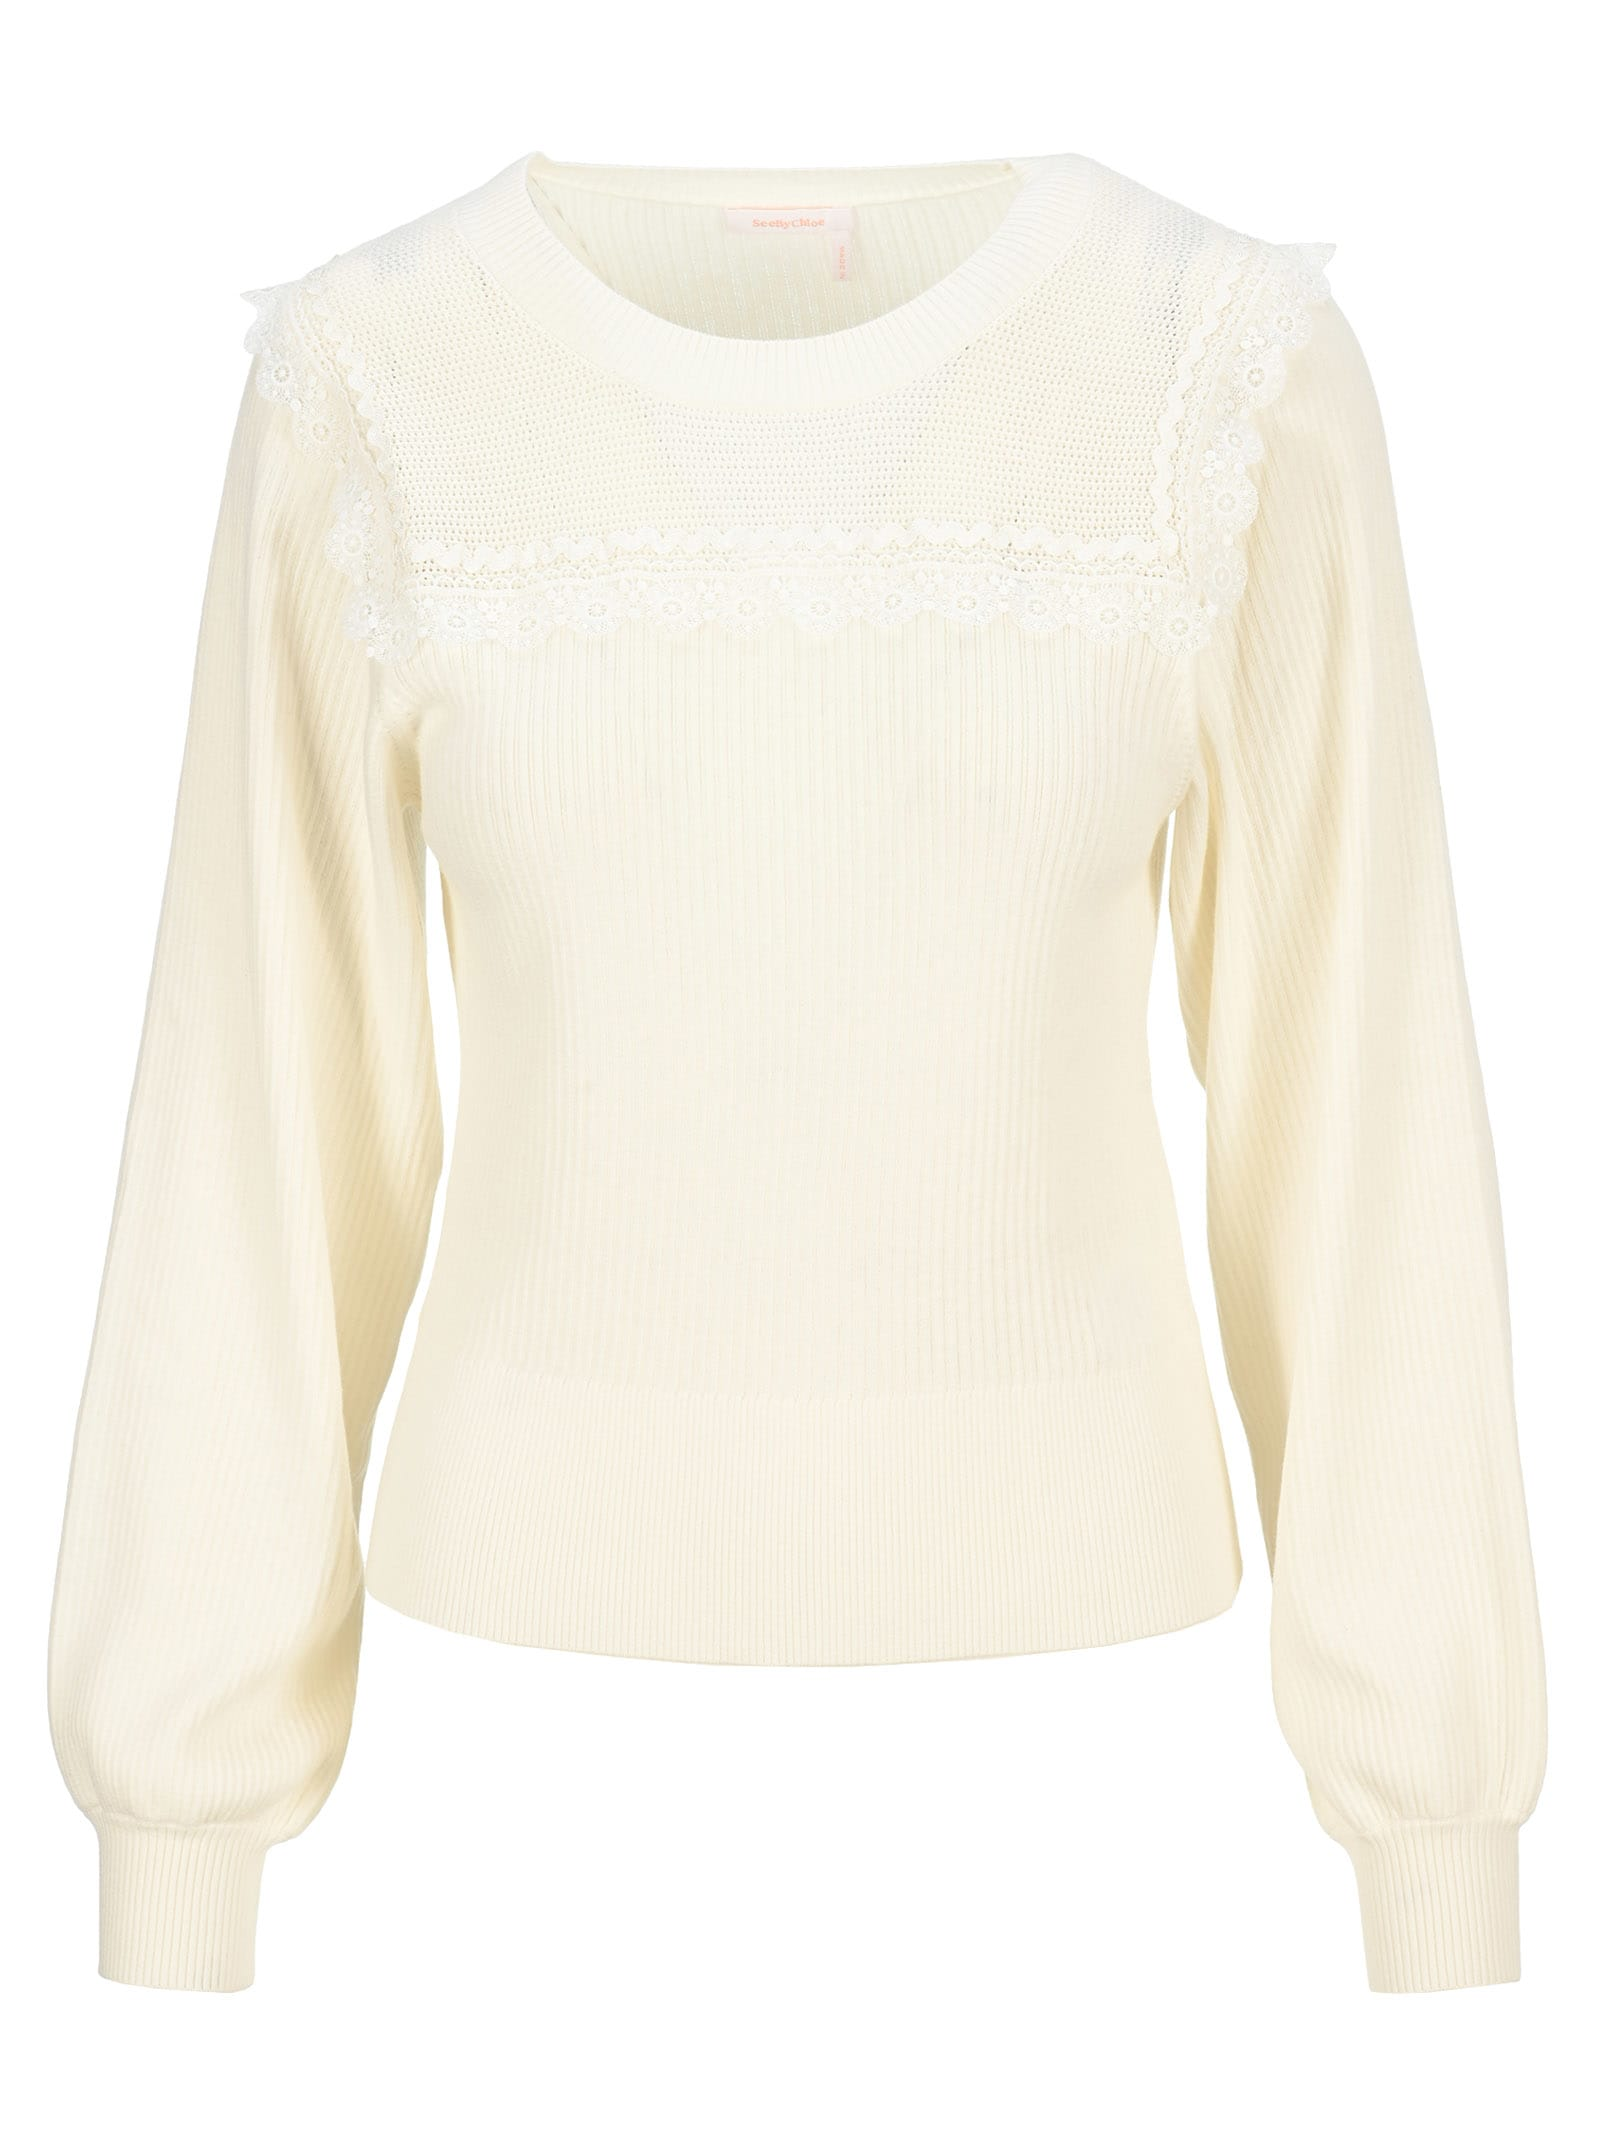 See By Chloé SEE BY CHLOE ROMANTIC KNIT